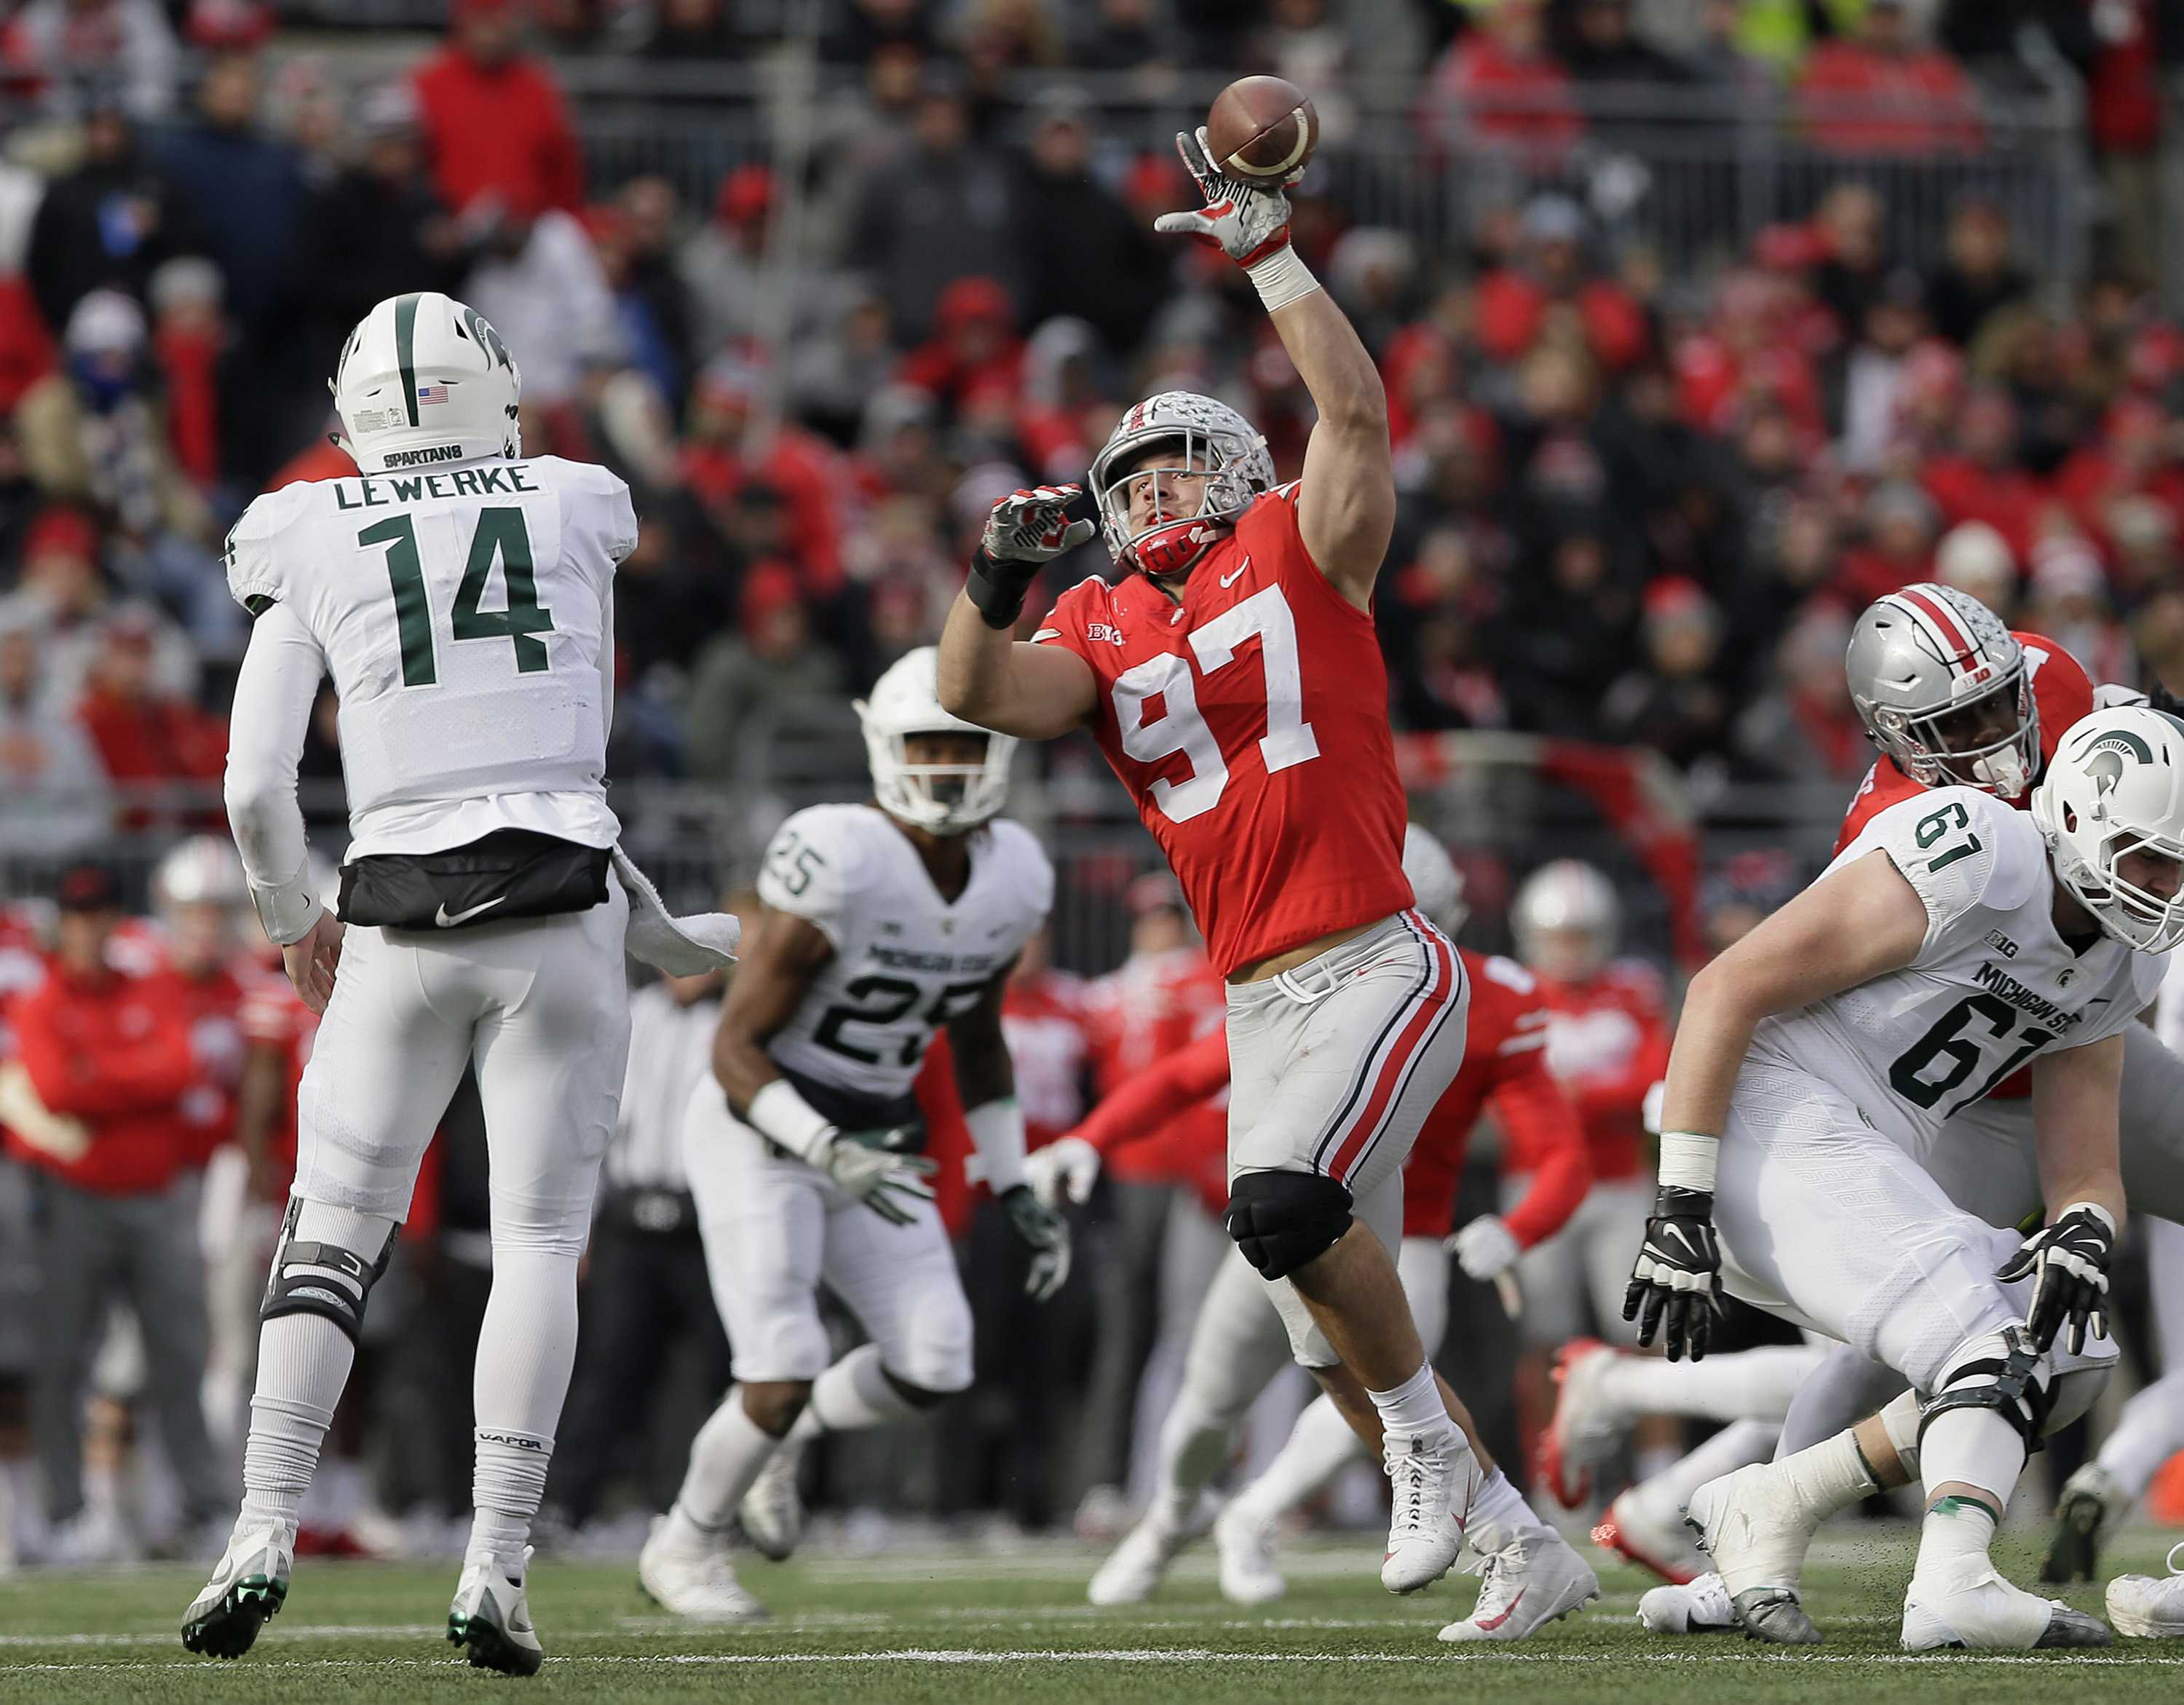 Ohio State Buckeyes defensive lineman Nick Bosa (97) bats down a pass by Michigan State Spartans quarterback Brian Lewerke (14) during the third quarter on Saturday, Nov. 11, 2017 at Ohio Stadium in Columbus, Ohio. (Adam Cairns/Columbus Dispatch/TNS)